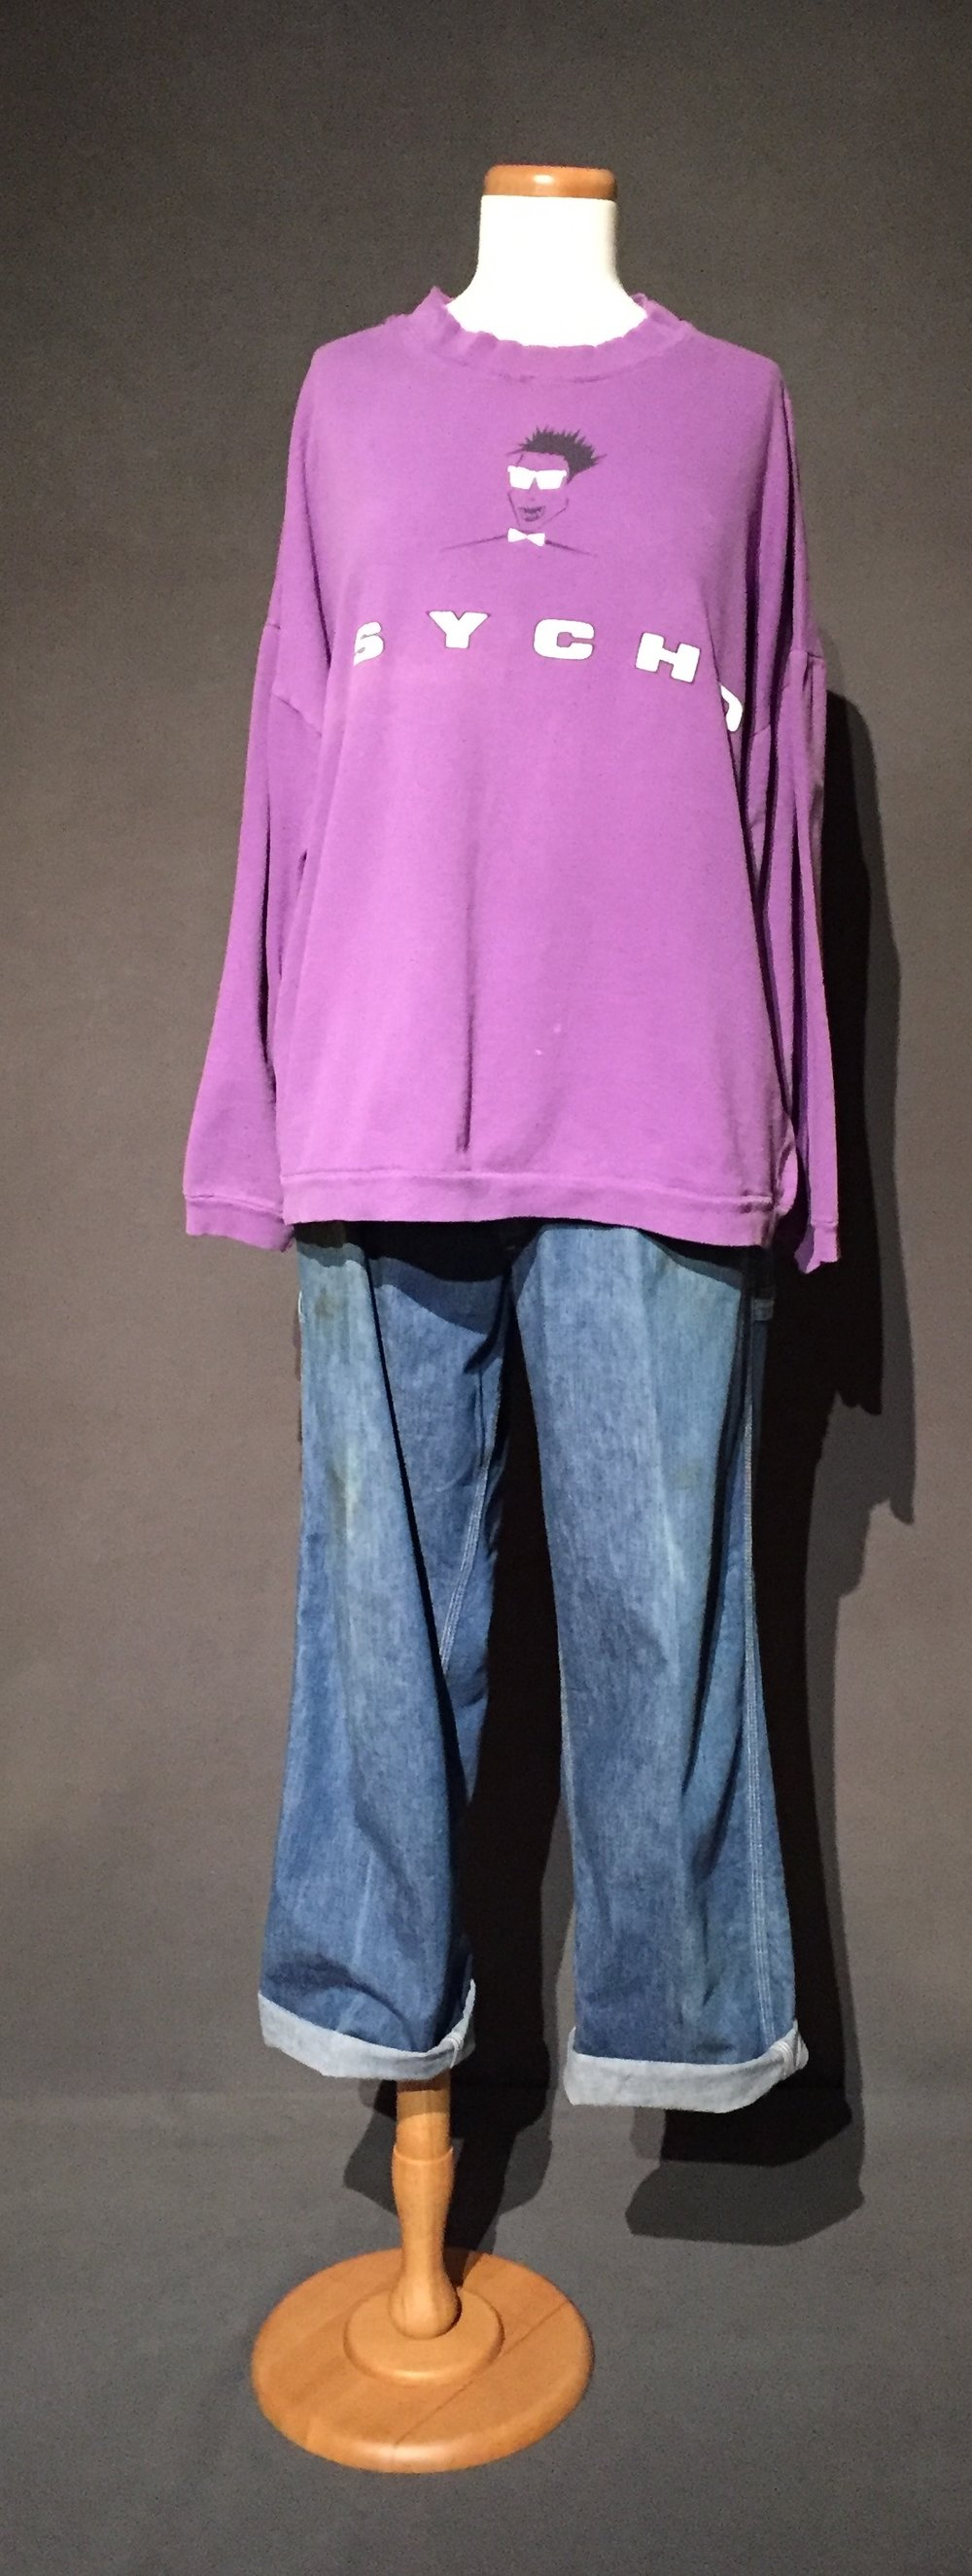 "- Purple ""psycho"" sweatshirt, denim pants; Owner – Maren, bi-sexual, woman, 41, lives in Iowa; c. 1990sMaren explained that she ""physically presented pretty butch."" This sweatshirt is a garment she wore in high school in the 1990s that she felt was indicative of her sexuality. She related experiences about other garments pictured in the case as well, such as flannels and Doc Martens when she said, ""I was walking with my girlfriend at the time, and I had a bottle thrown at me in Iowa City. I was wearing cut-offs, Doc Martens, a tank top and a flannel over that. I was very clearly identified in their eyes as a lesbian."" – personal interview with Maren, October 1, 2017"